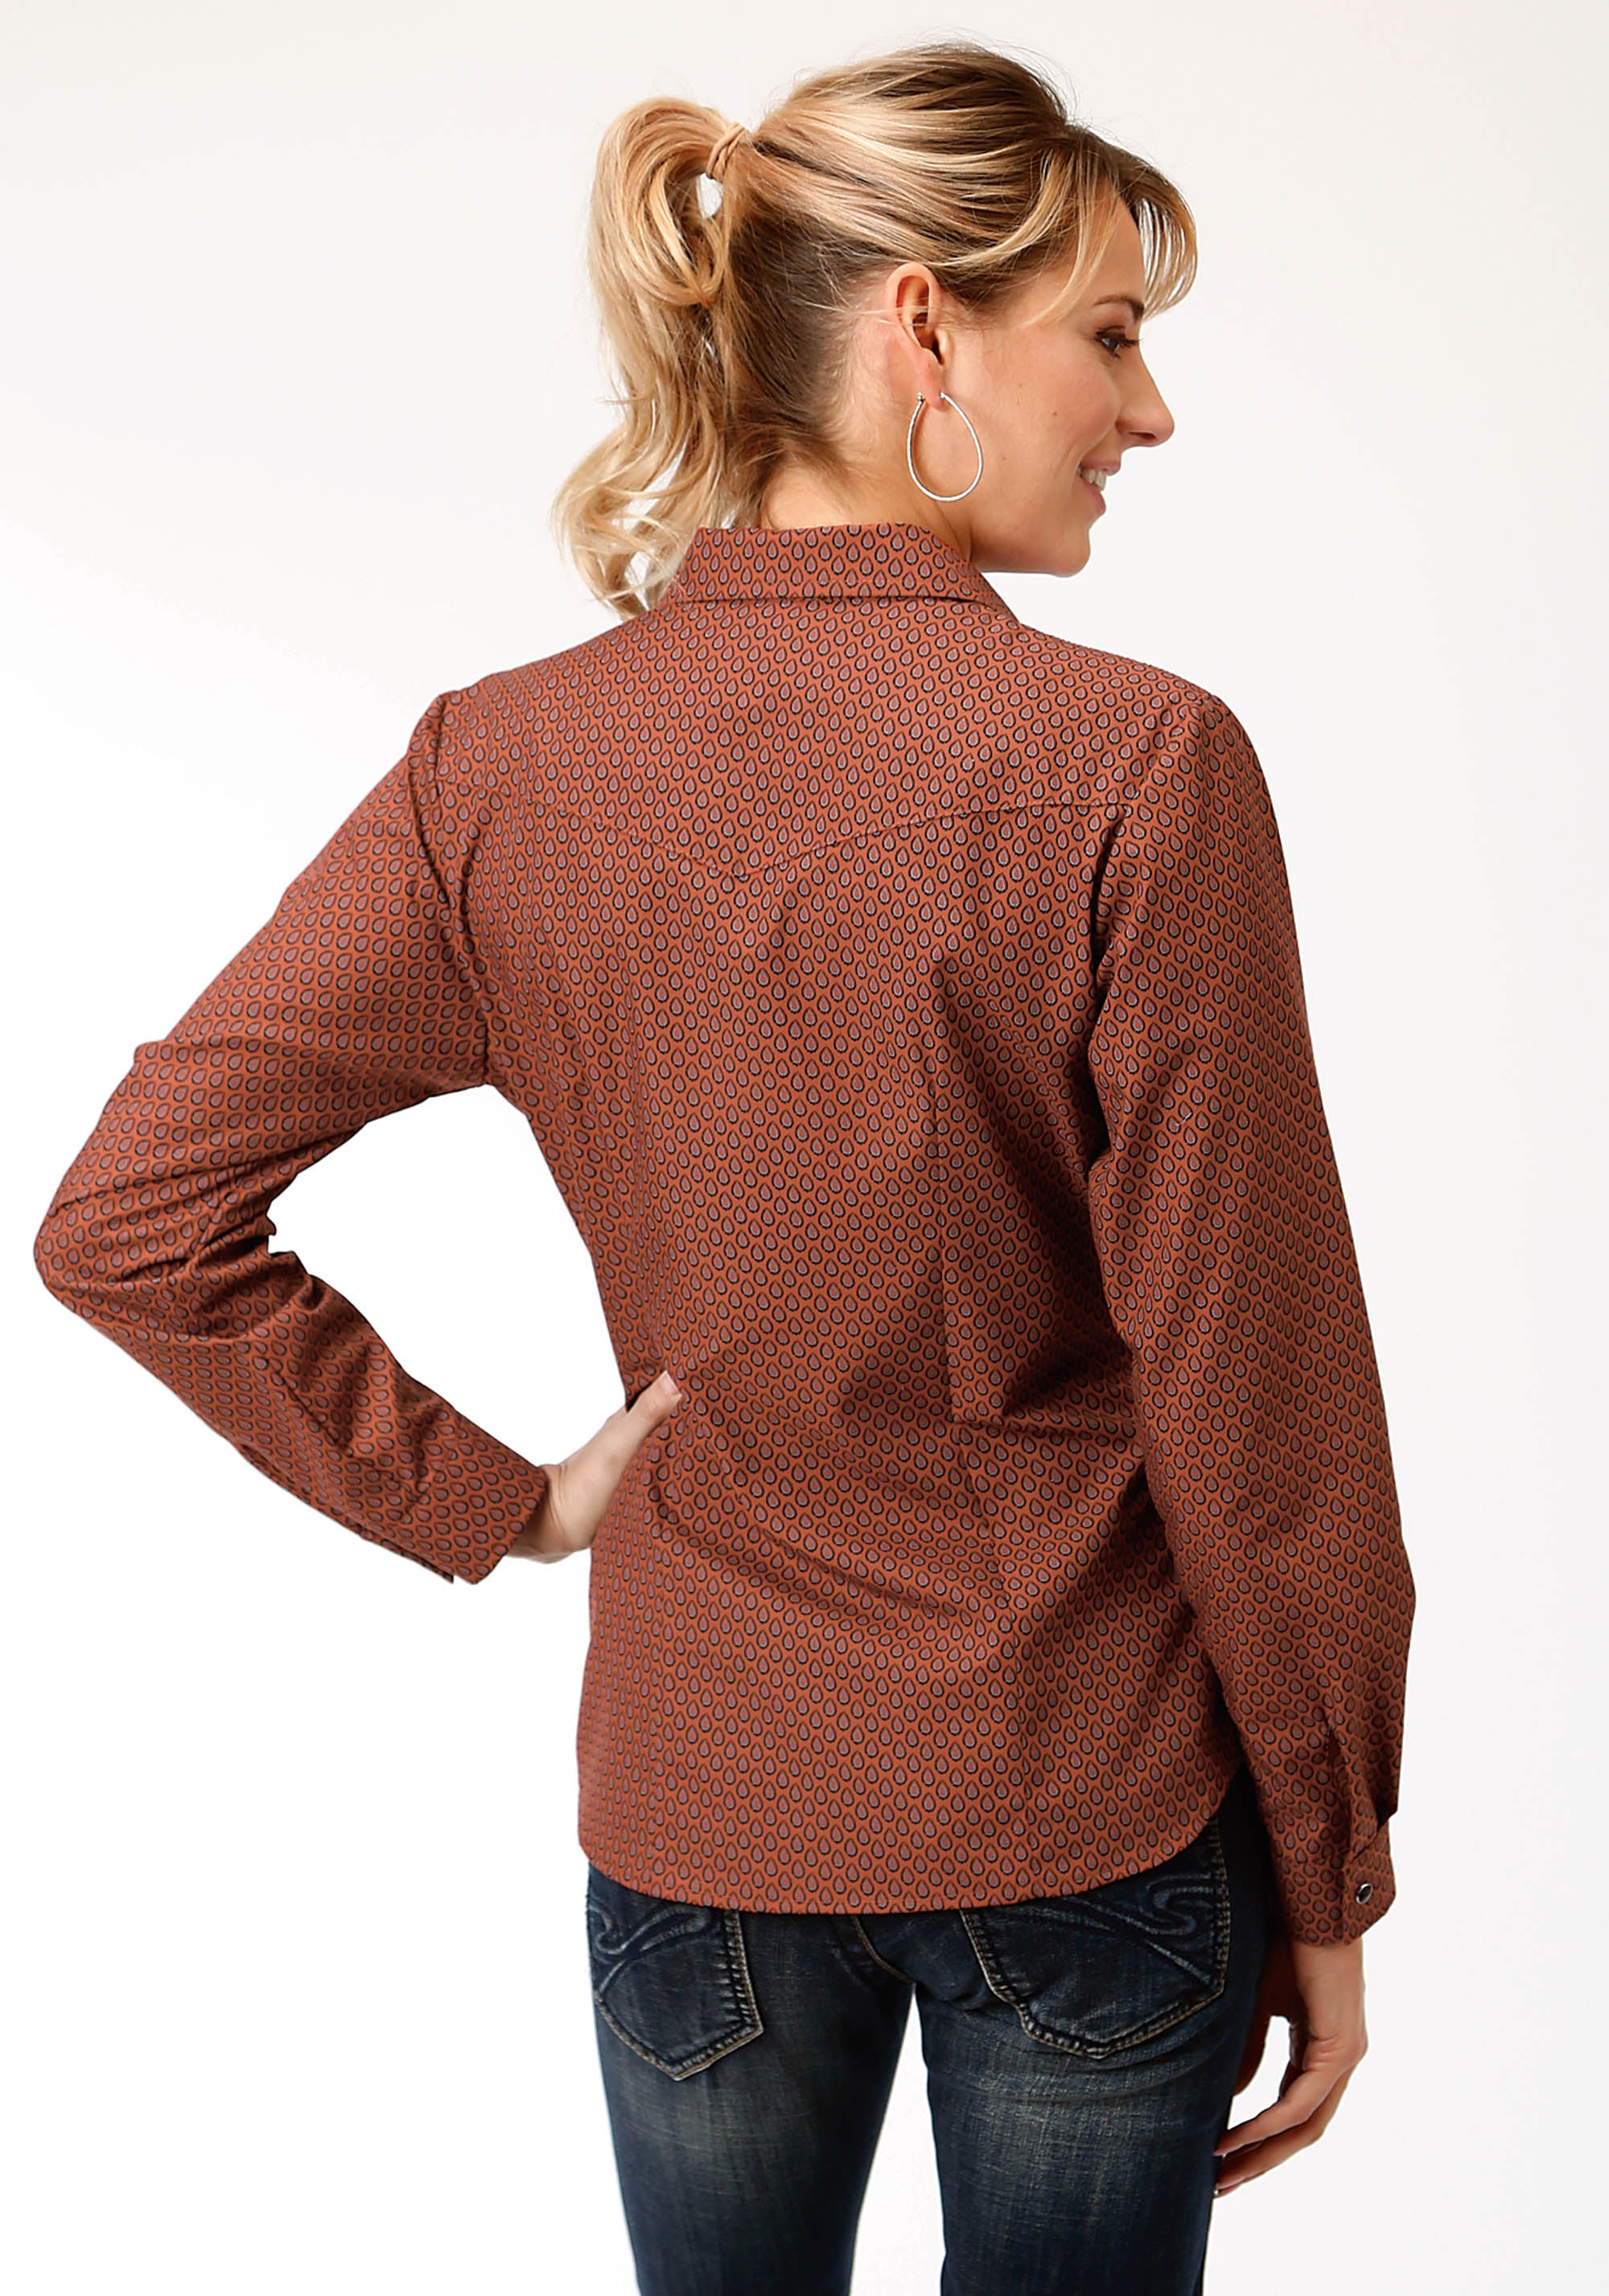 ROPER WOMENS RUST 233 RUST TEAR DROP PRINT KARMAN CLASSICS- 55/45 PRINT LONG SLEEVE